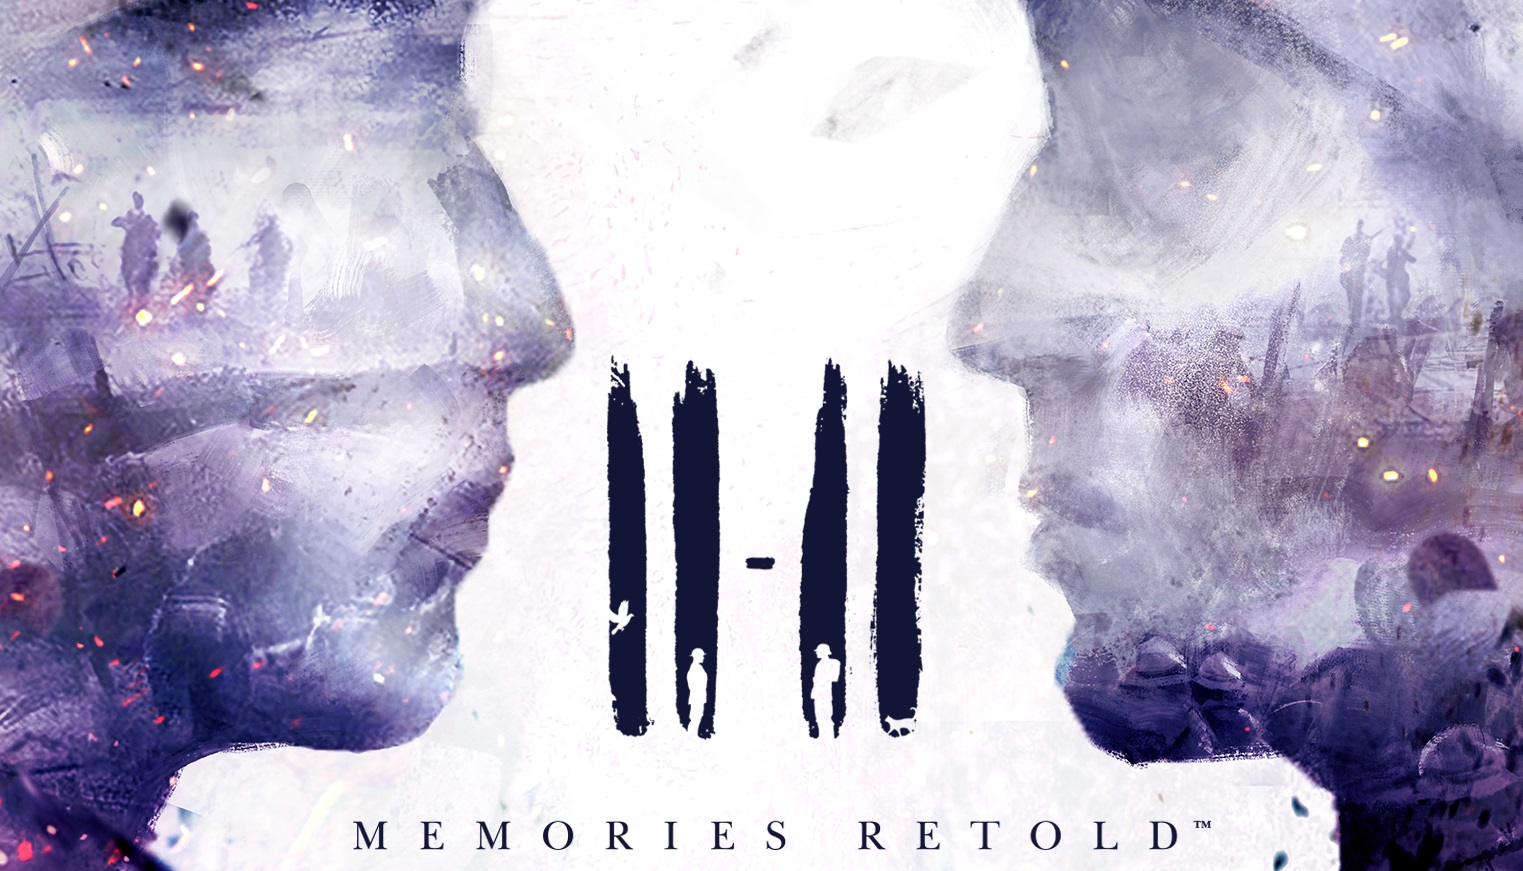 11-11 Memories Retold PS4 Pro Xbox One X Review Kritik Test Bandai Namco Entertainment Anti Kriegsspiel Worldwar I Erster Weltkrieg 1918 11 11 1918